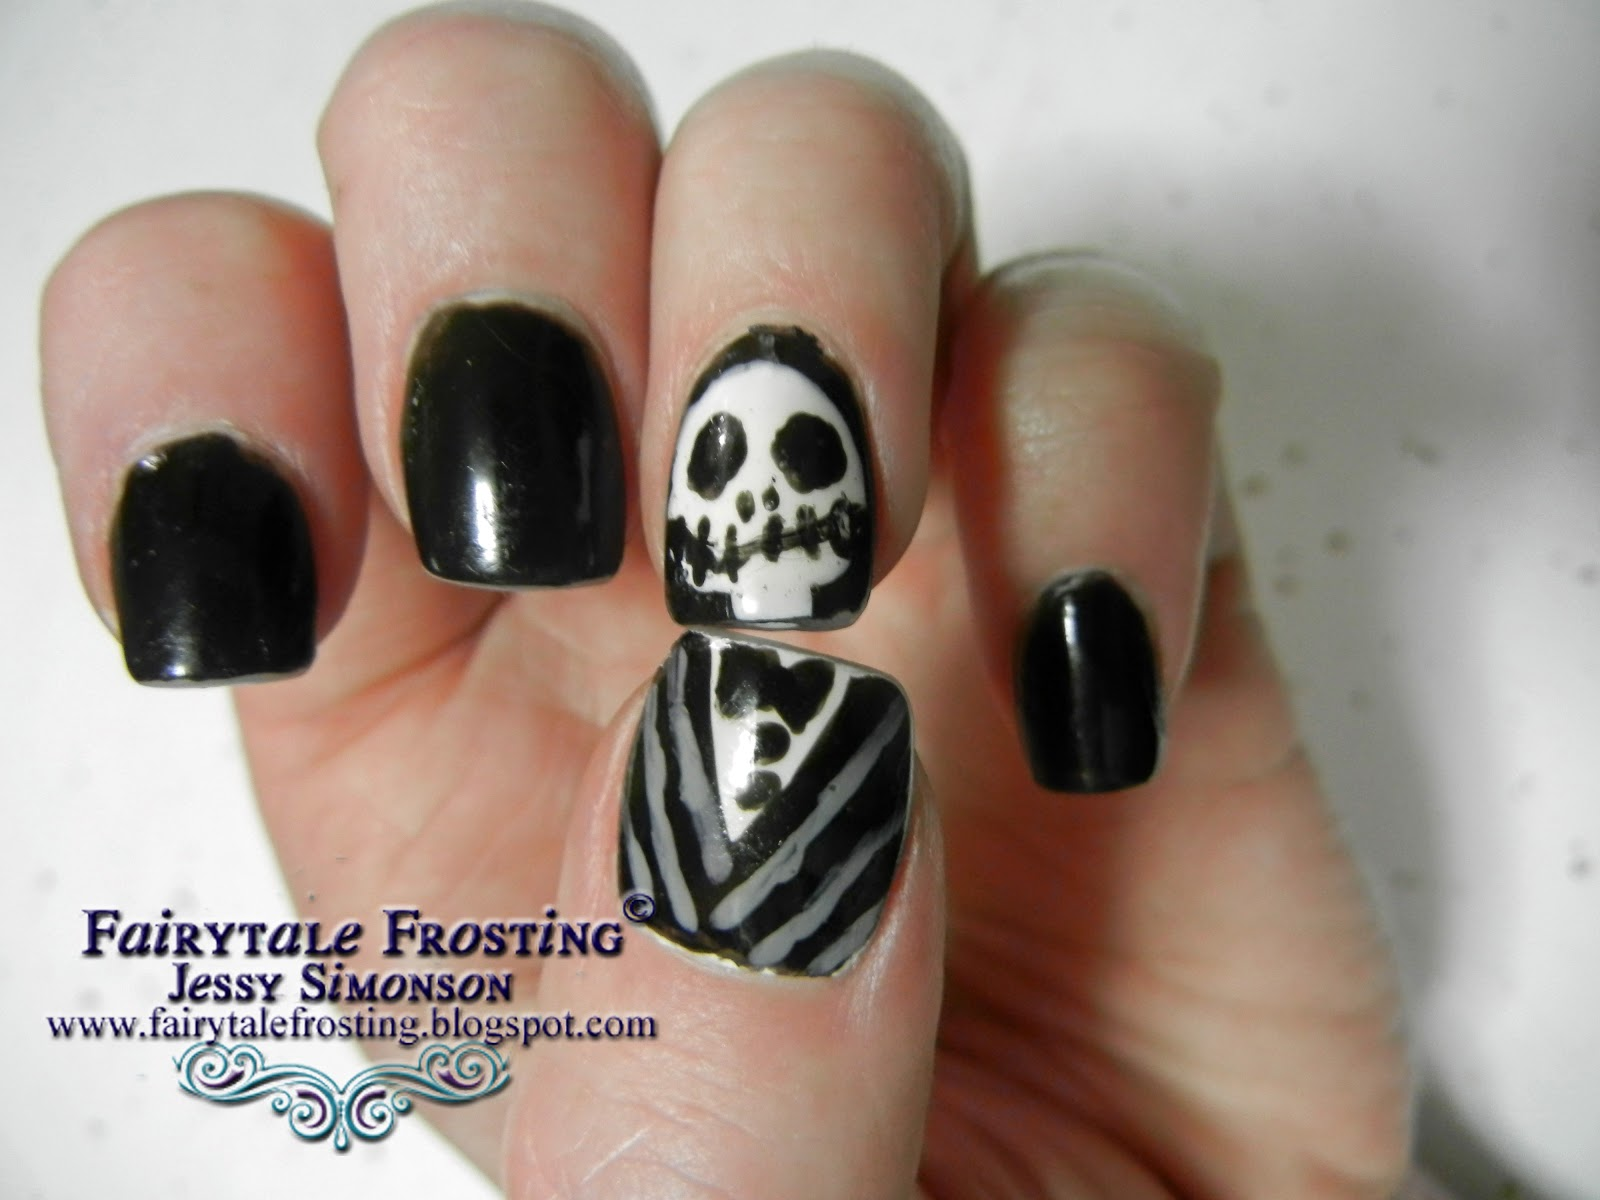 Fairytale Frosting: Jack Skellington Nails